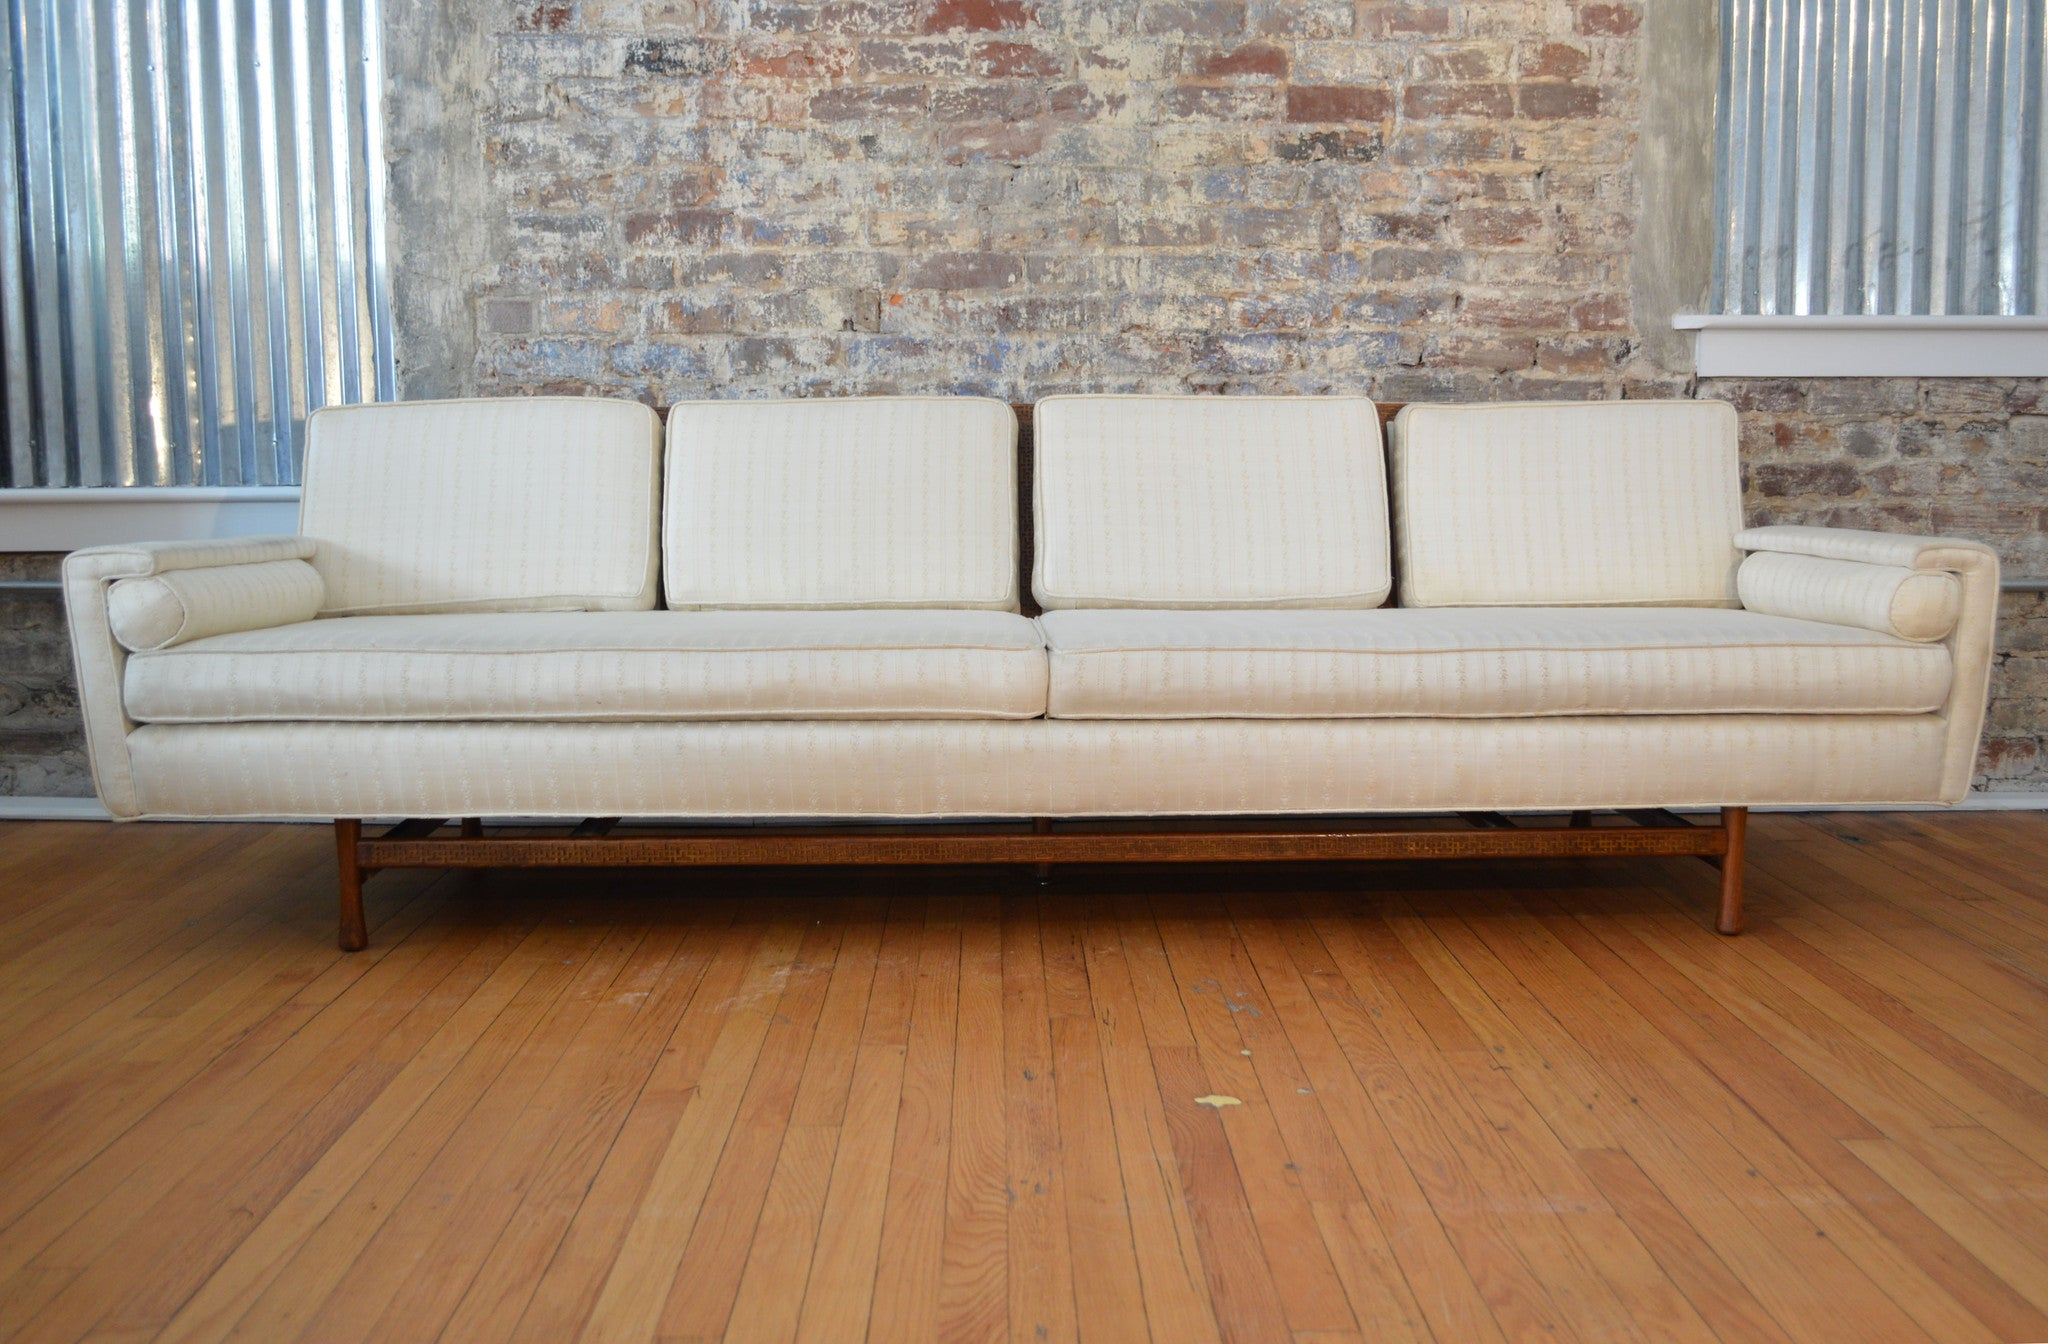 Elegant mid century modern sofa with greek key design for Mid century modern danish furniture